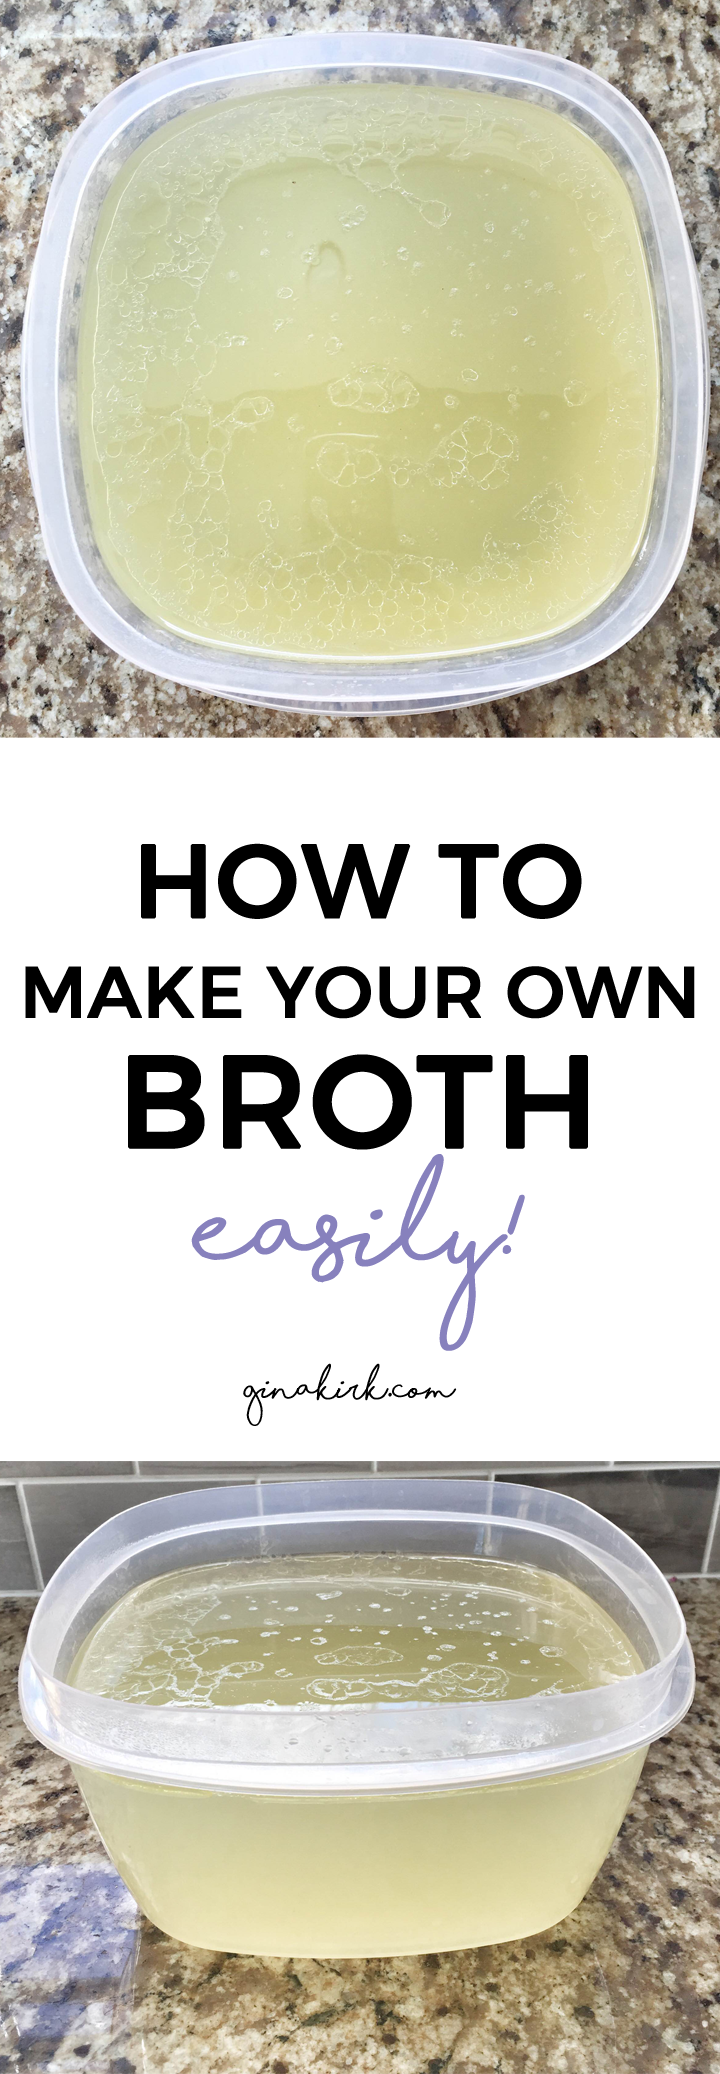 How to make your own broth | meat broth recipe | chicken broth recipe | easy chicken broth! | GinaKirk.com @ginaekirk